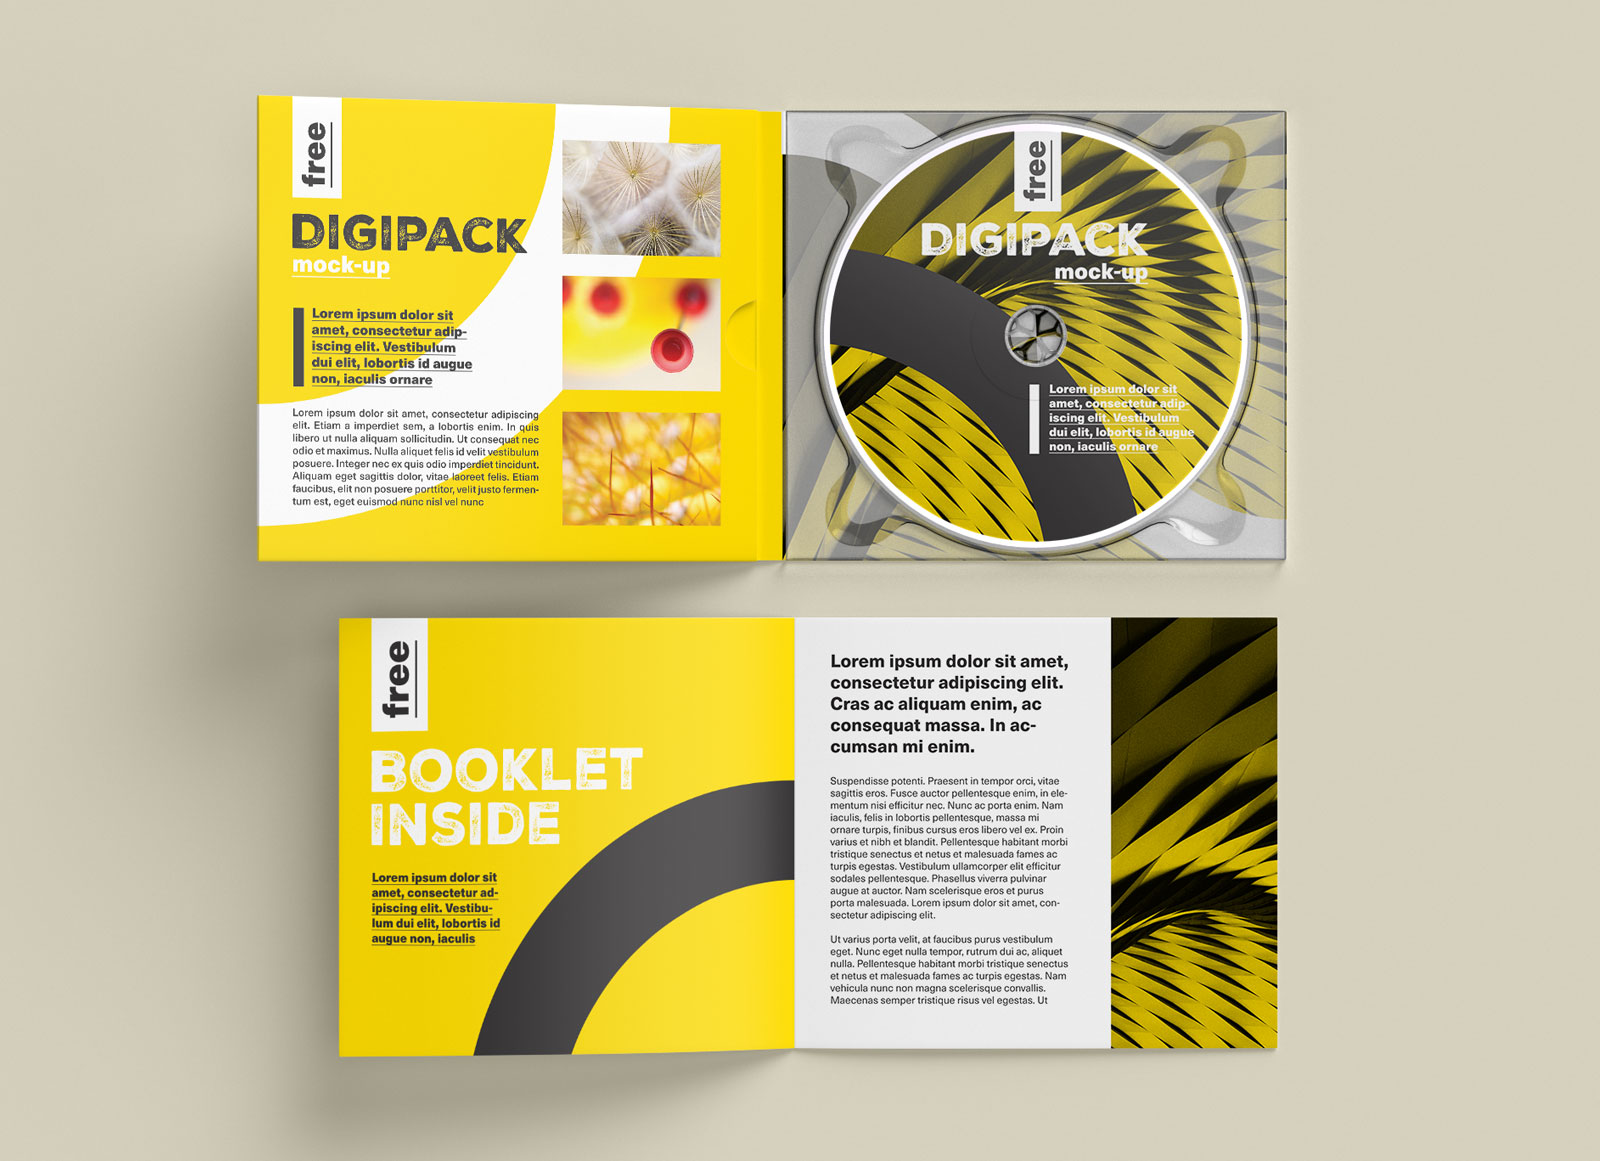 Free CD / DVD Case & Booklet Mockup PSD - Good Mockups